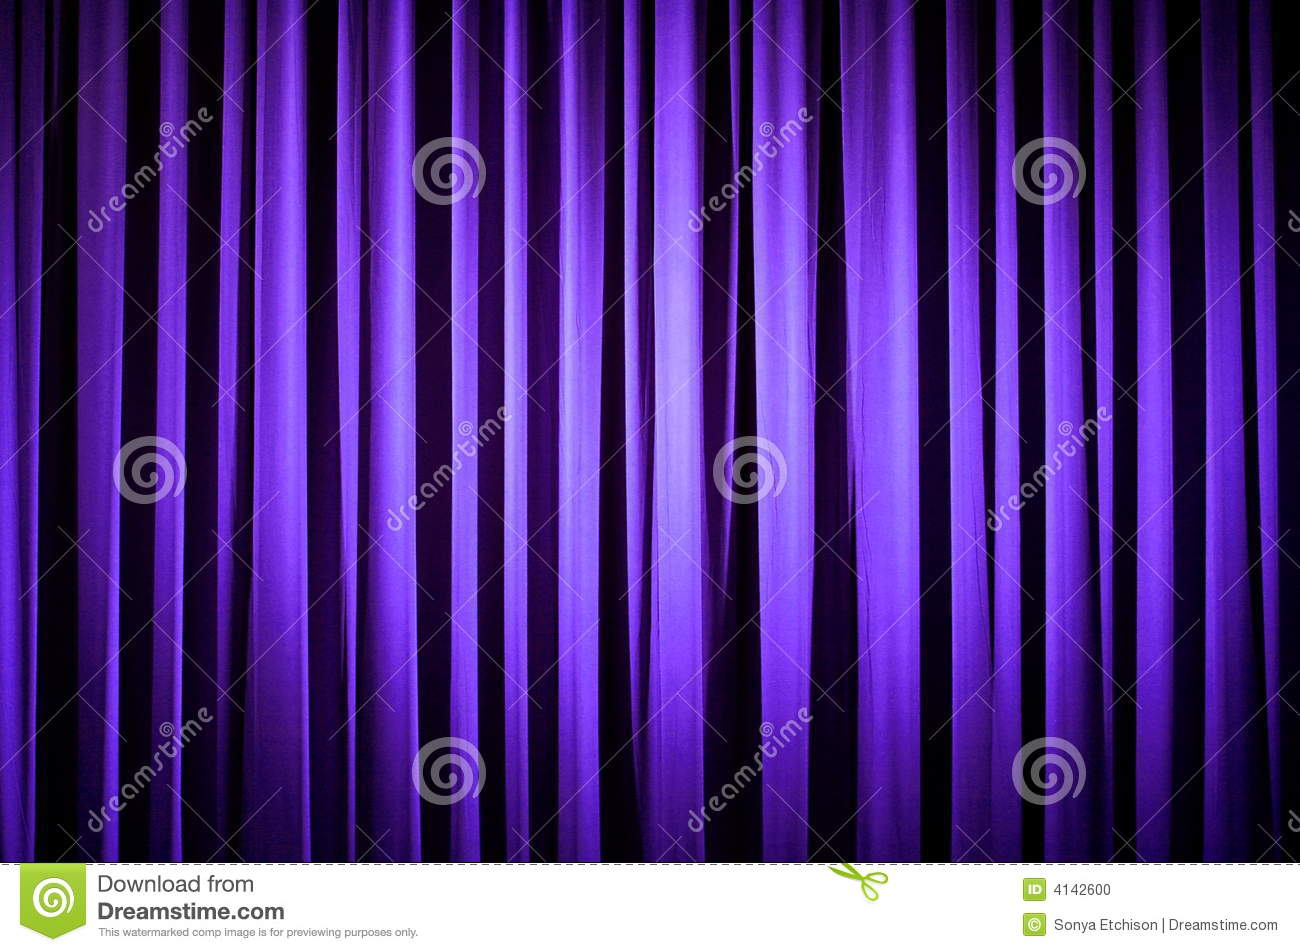 Purple theater curtain with a spotlight shining on it